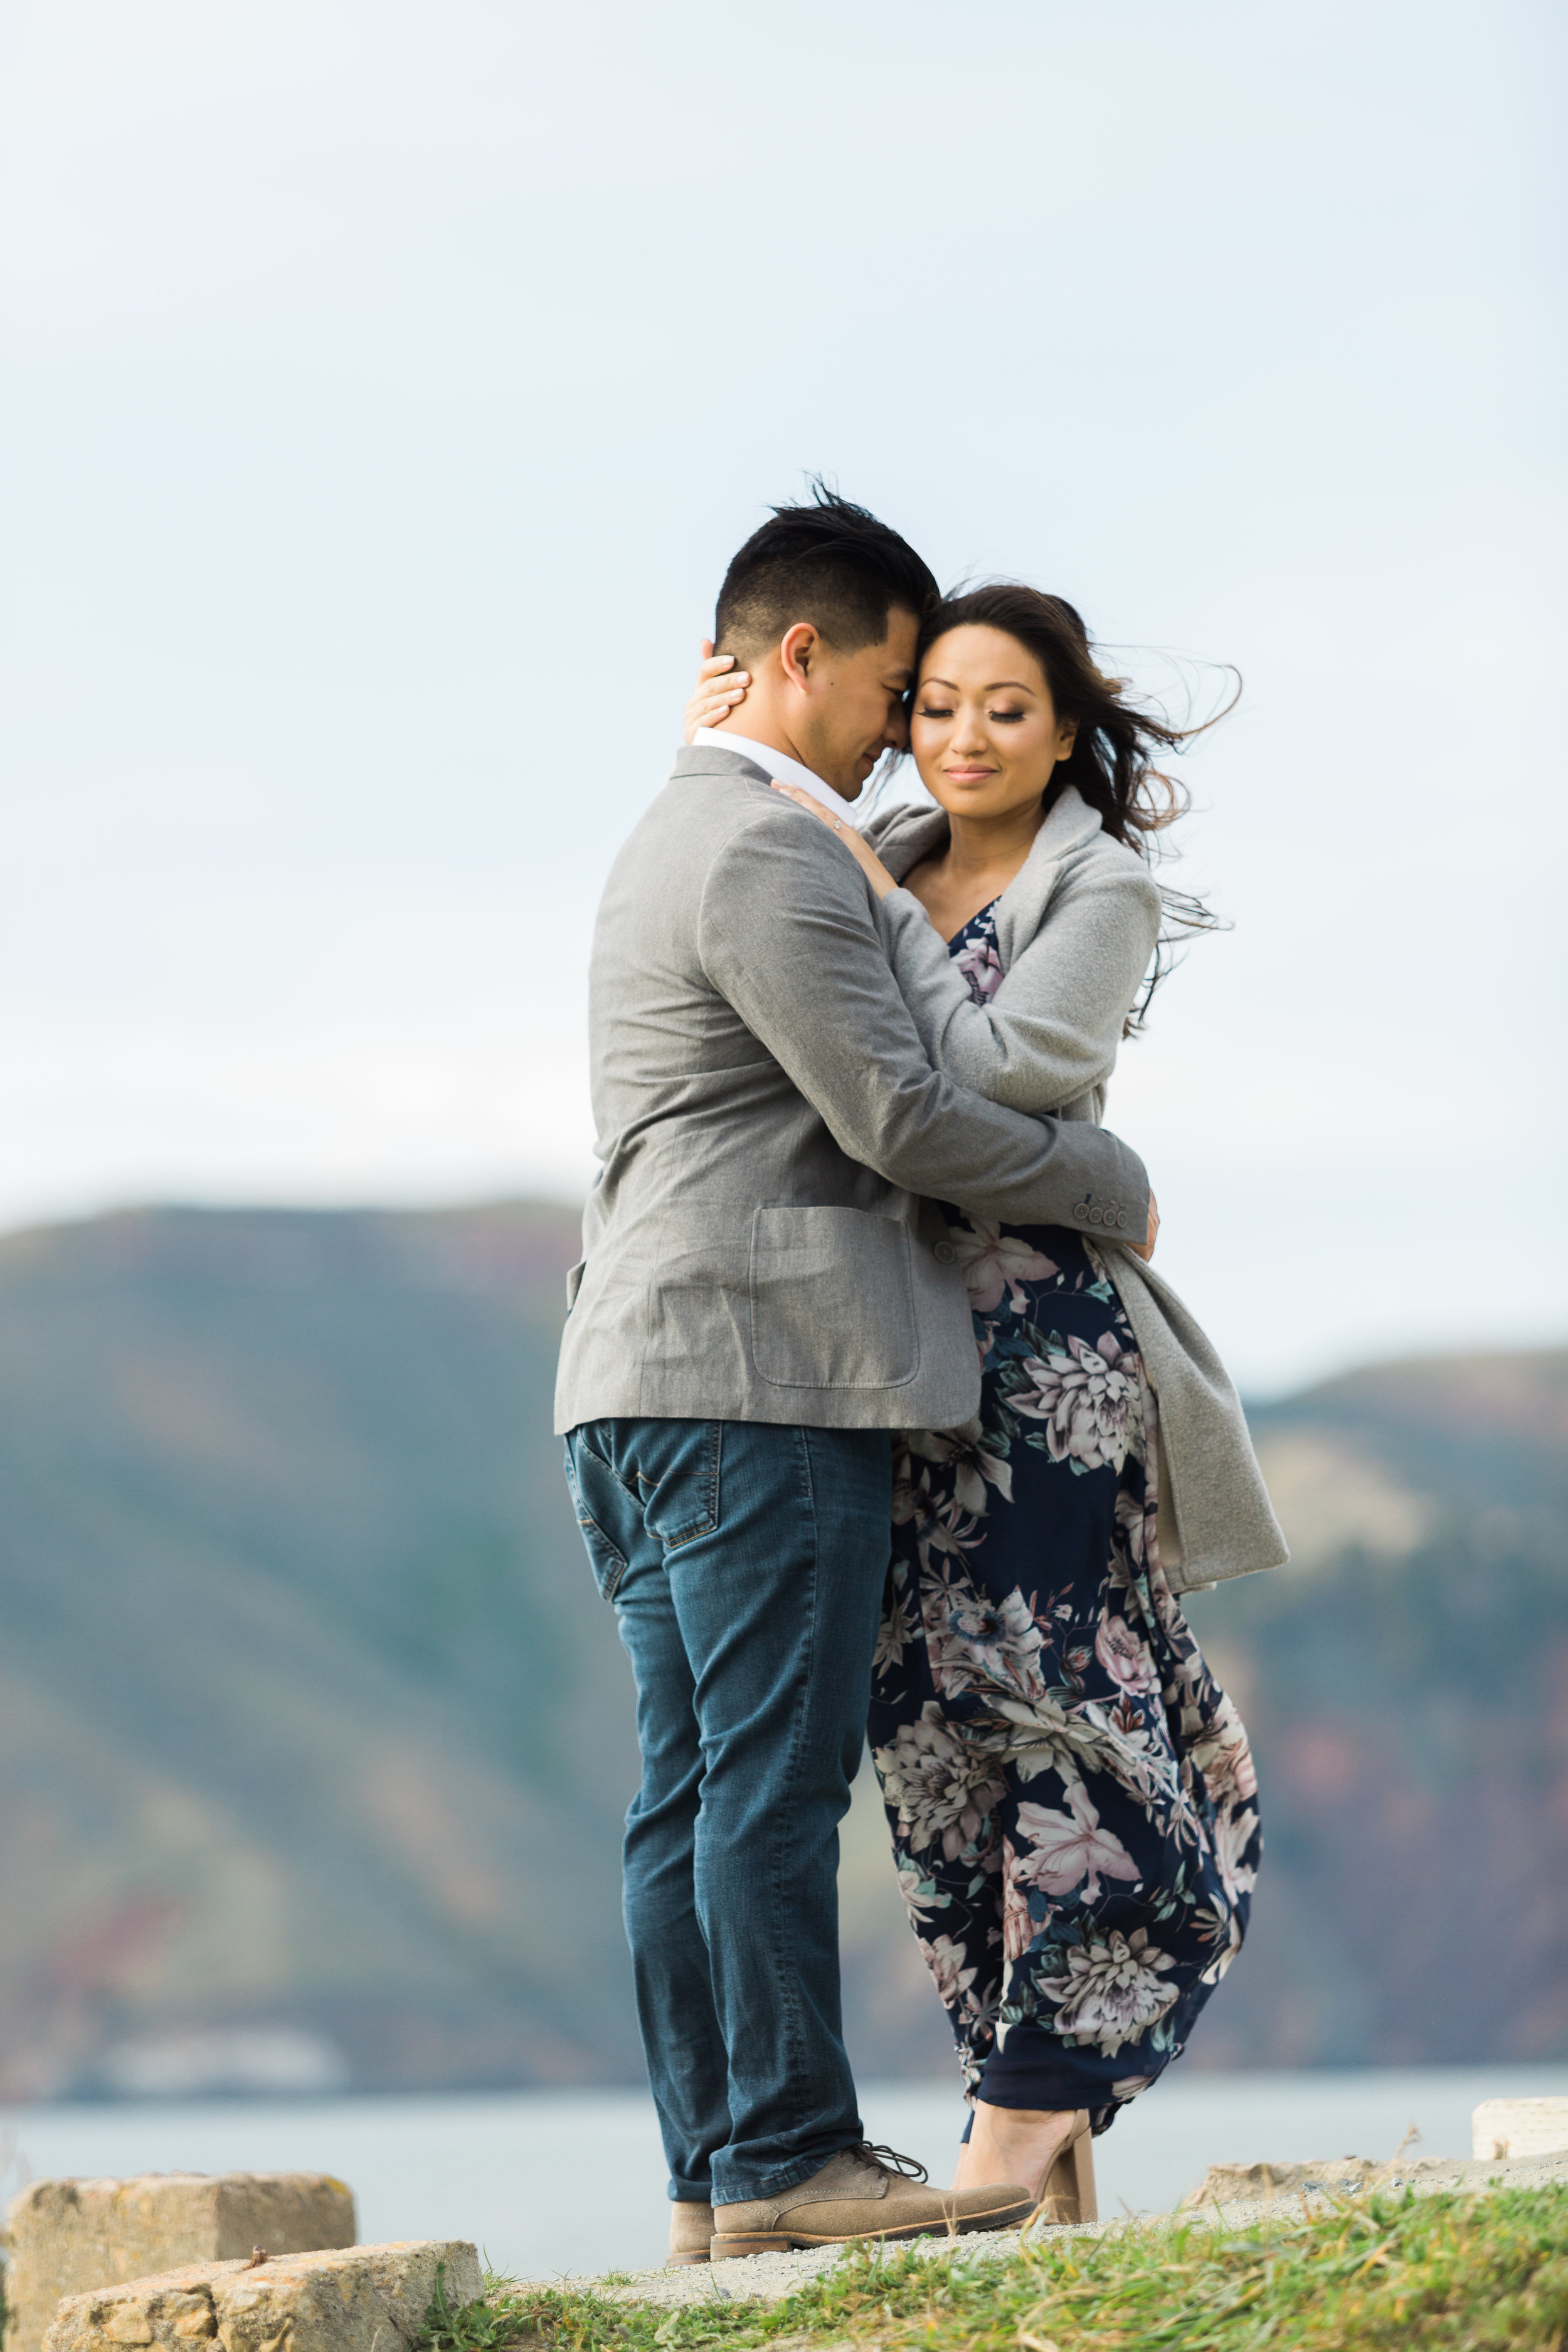 San-Francisco-Engagement-Session-Tara-Nichole-Photo-21.jpg